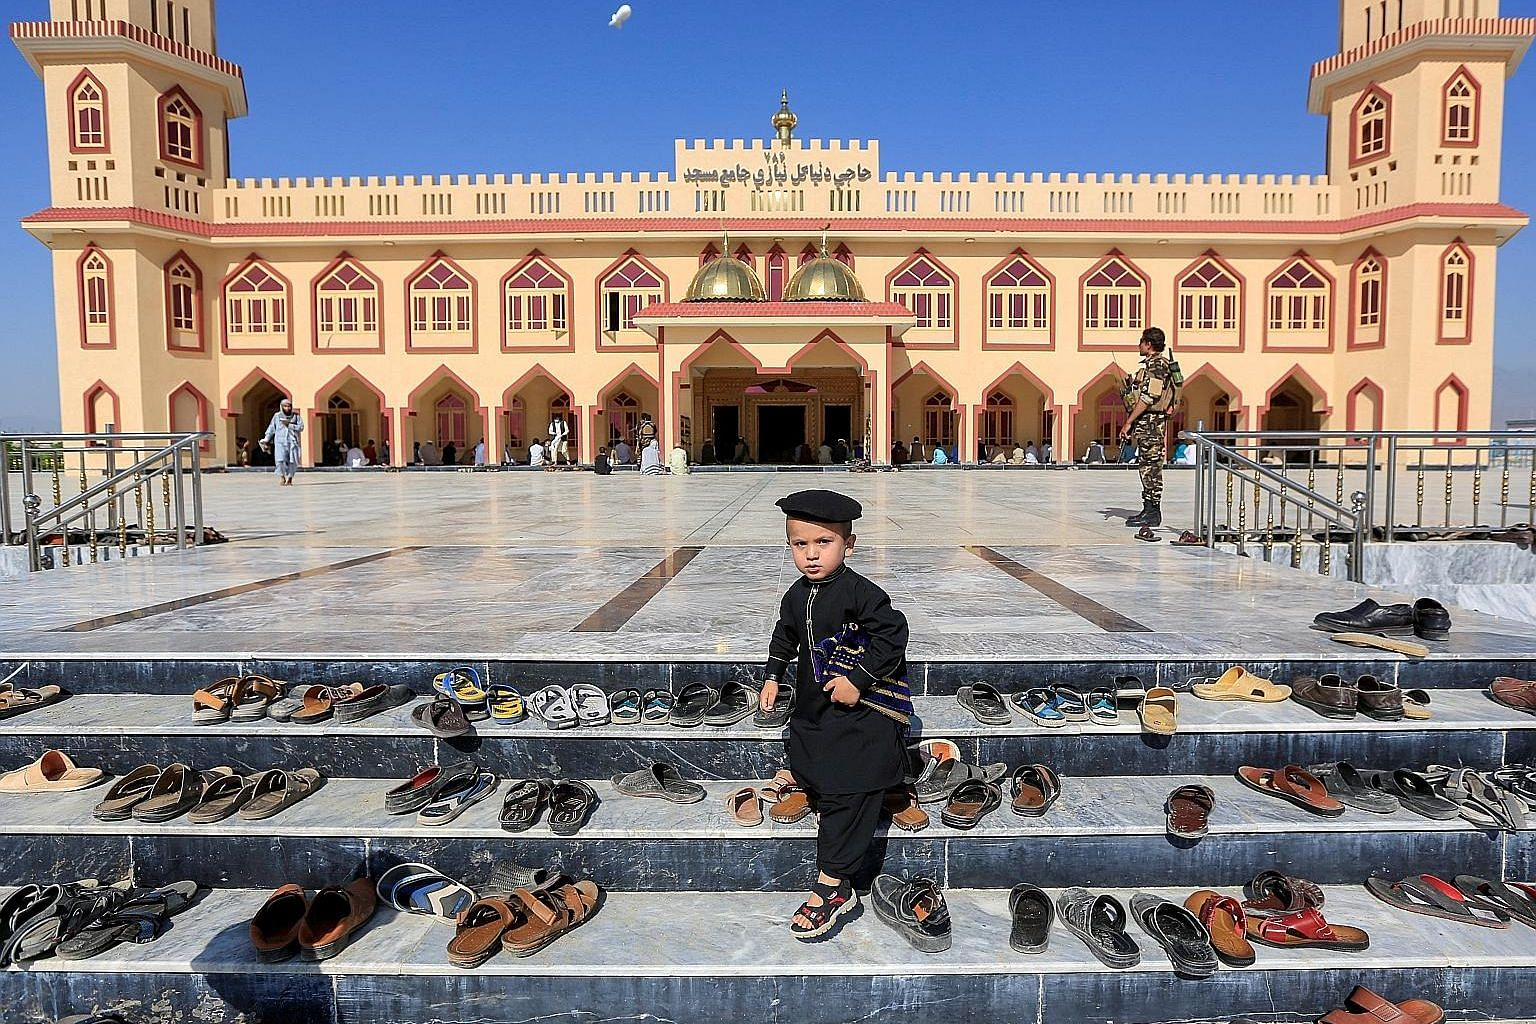 An Afghan boy outside a mosque during the Eid al-Fitr holiday in Laghman province, Afghanistan, yesterday. The Taleban made a three-day truce offer that started on Sunday to mark the holiday - a move swiftly welcomed by the Afghan government.